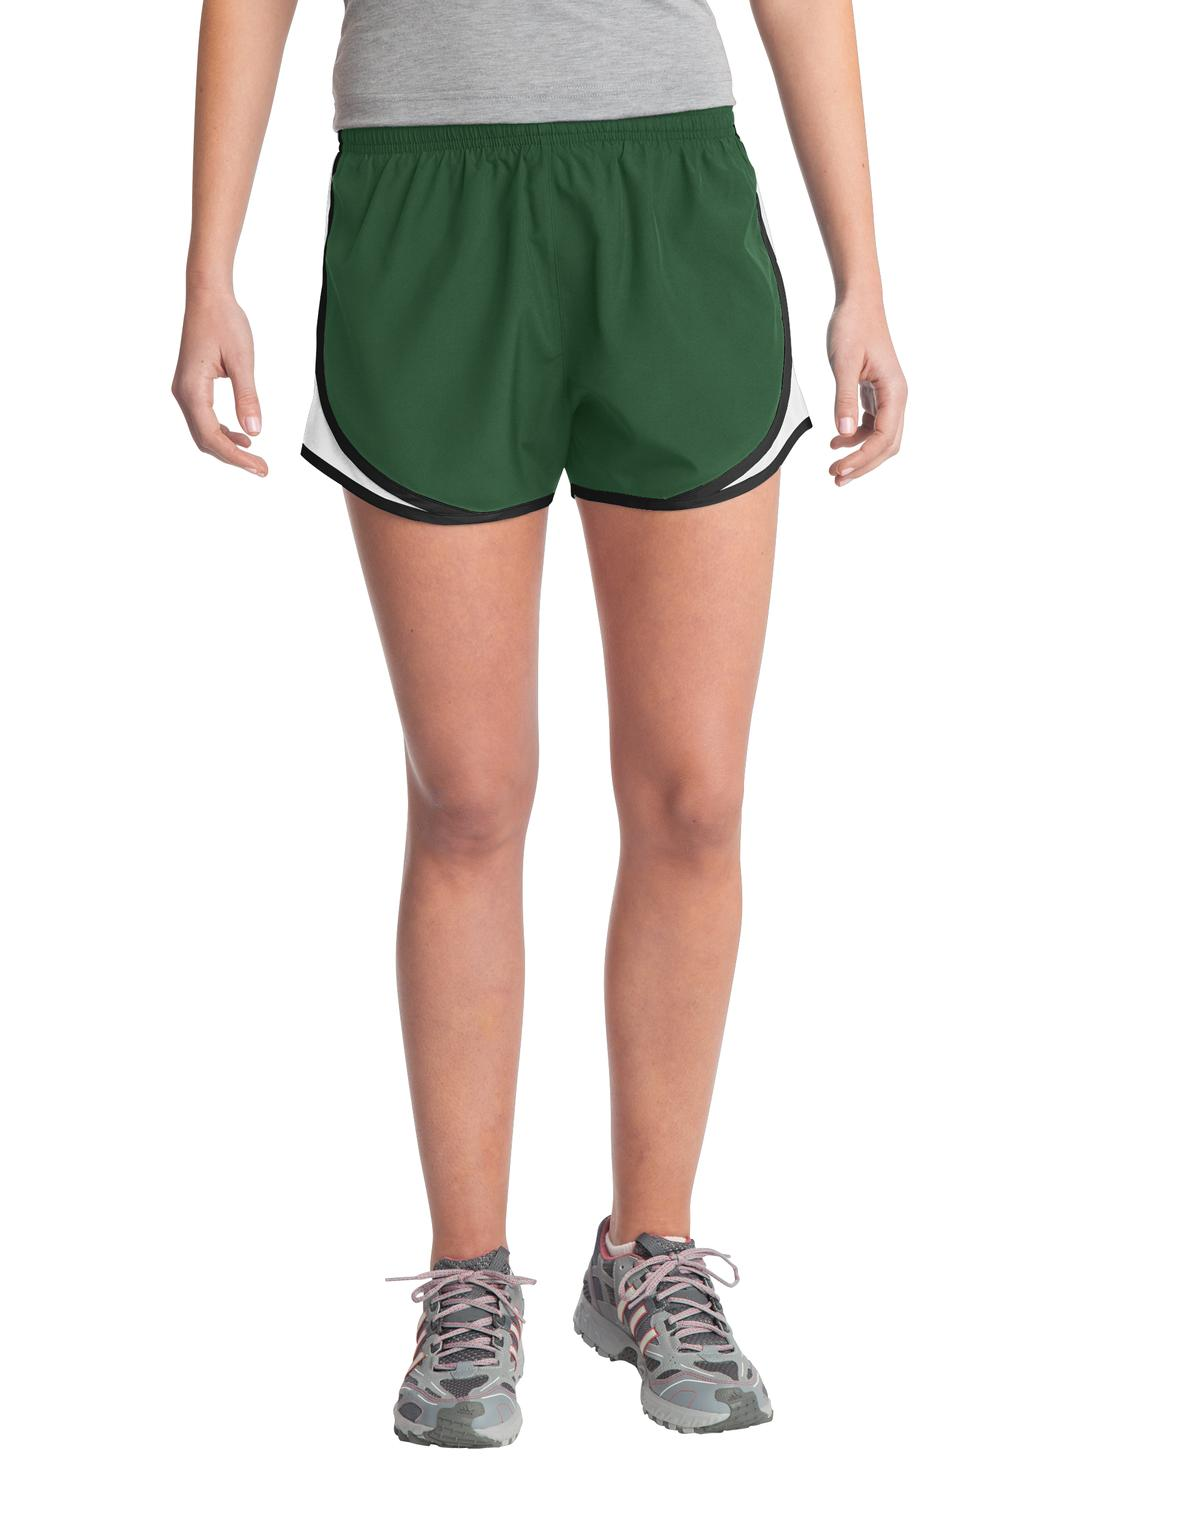 Sport-Tek ®  Ladies Cadence Short. LST304 - Forest Green/ White/ Black